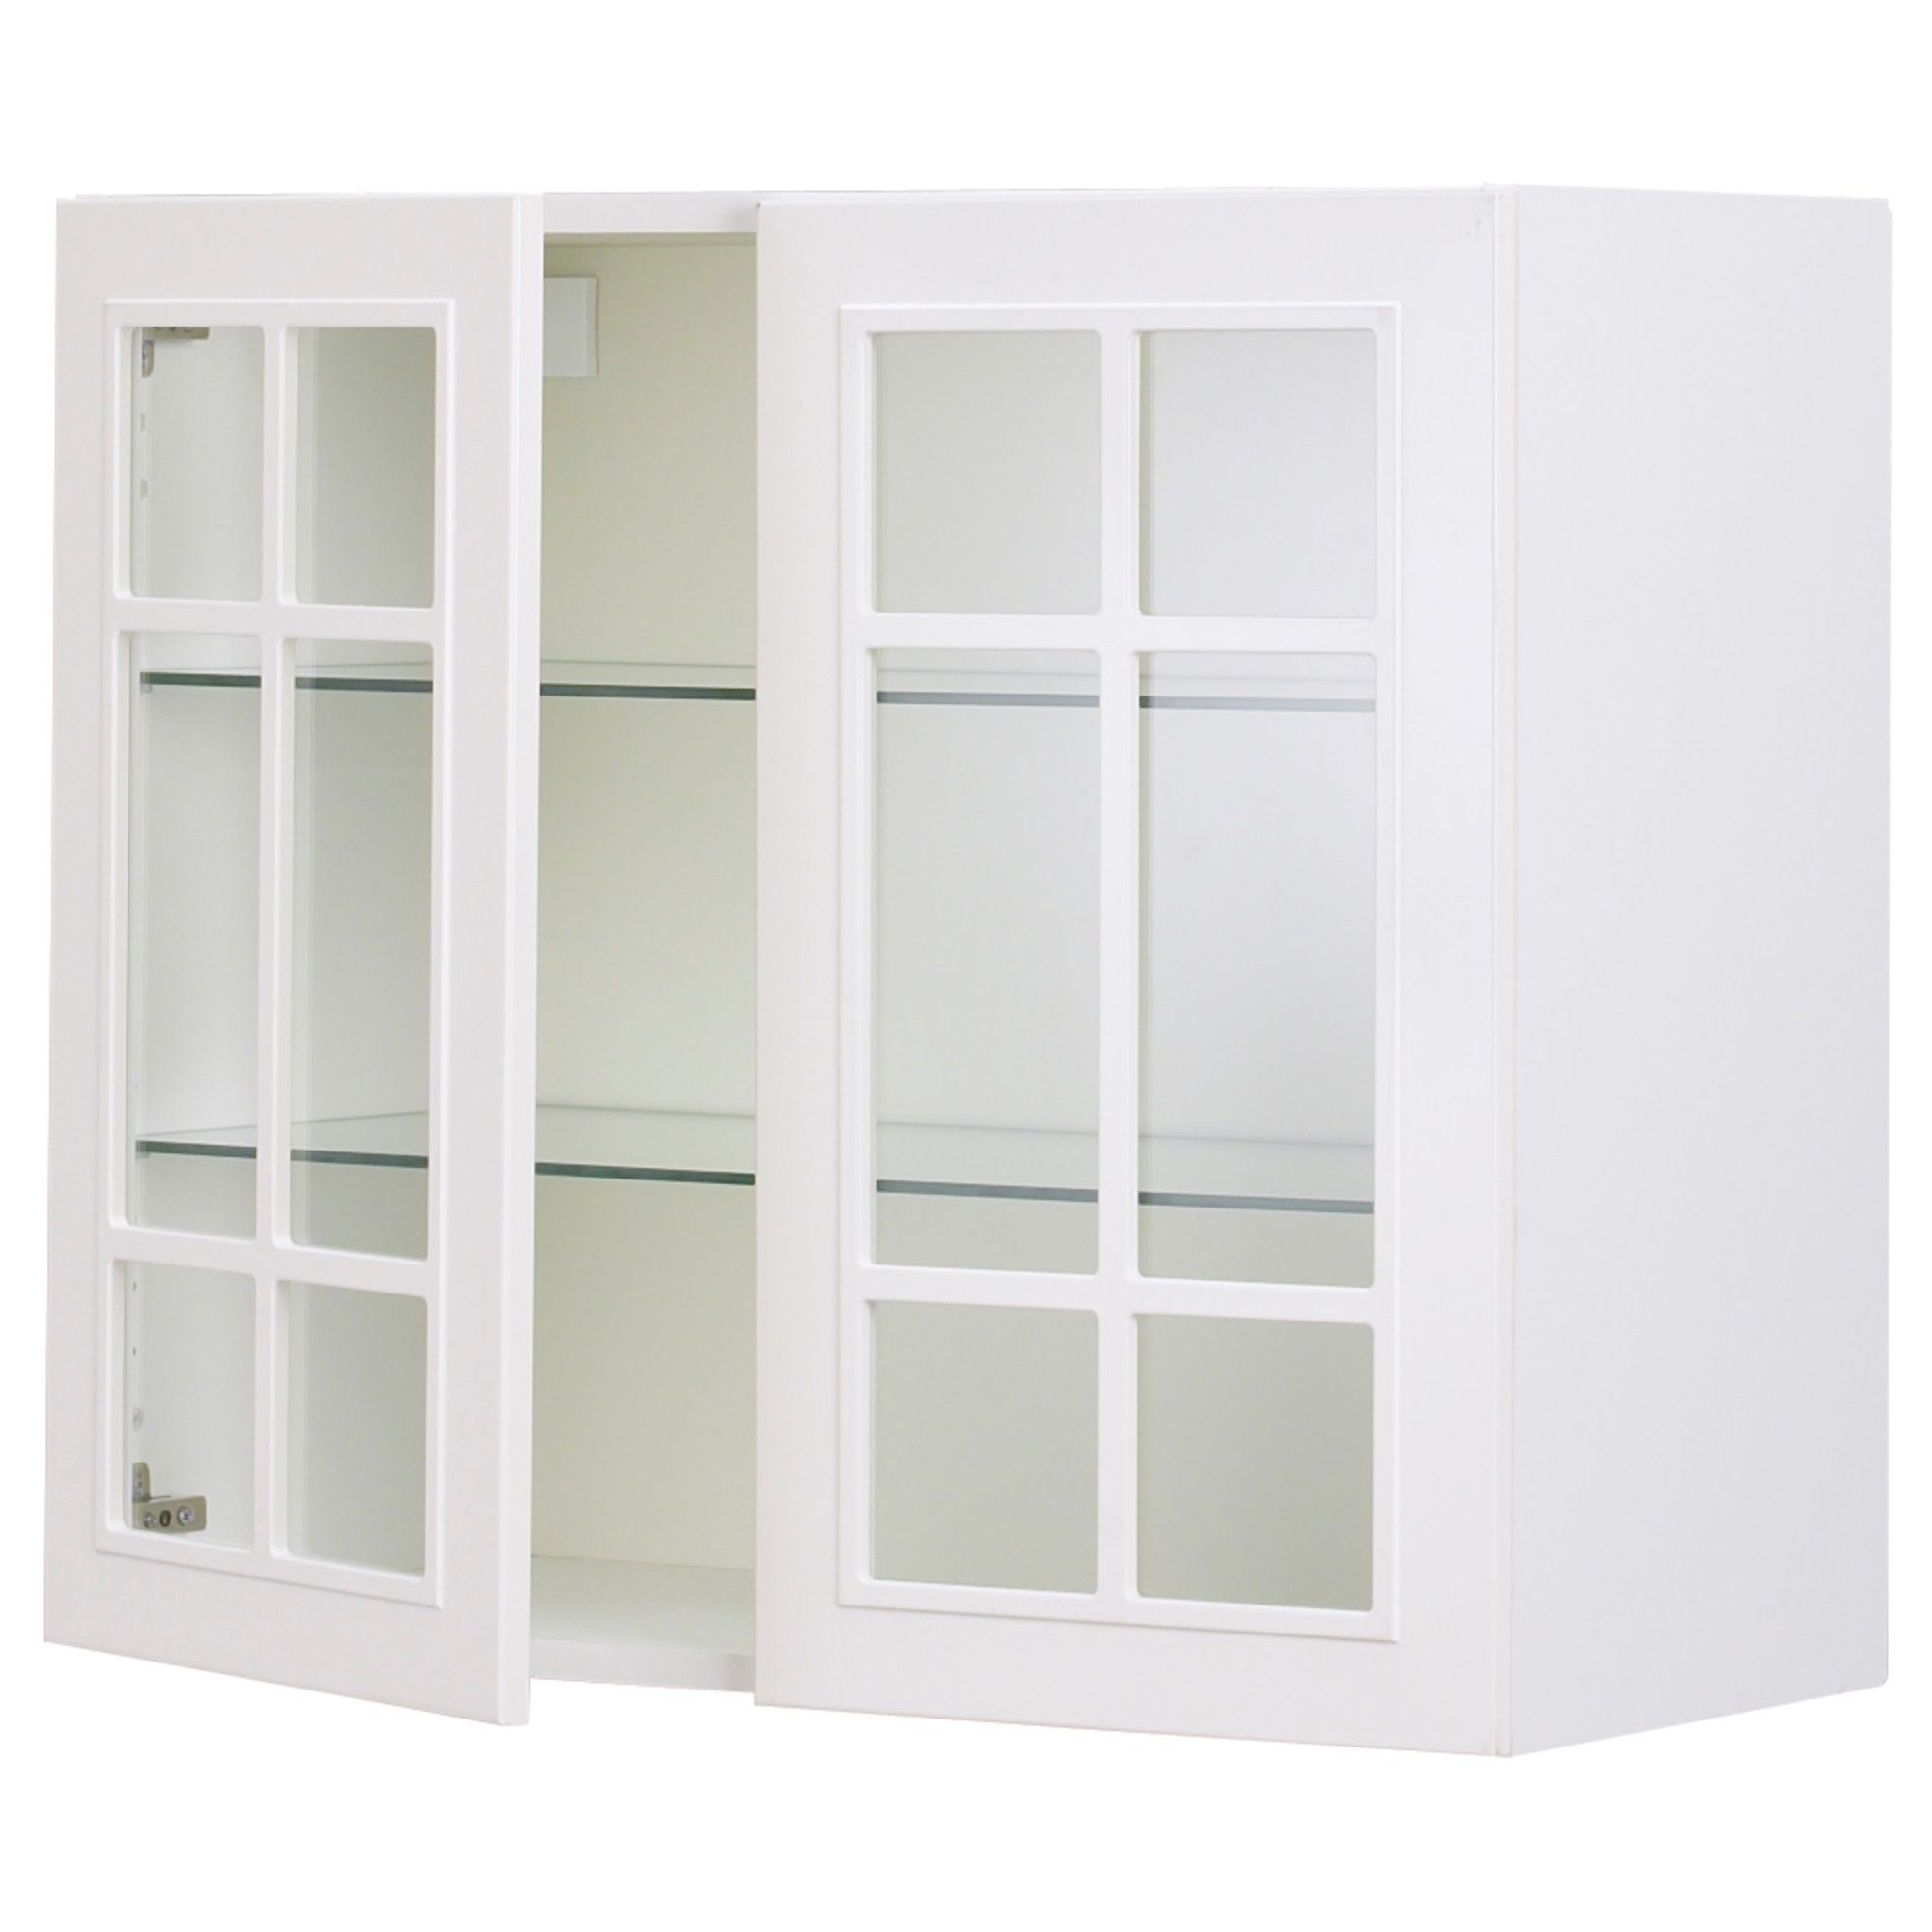 215 30 x 30 glass front wall cabinet akurum wall for Ikea glass door wall cabinet